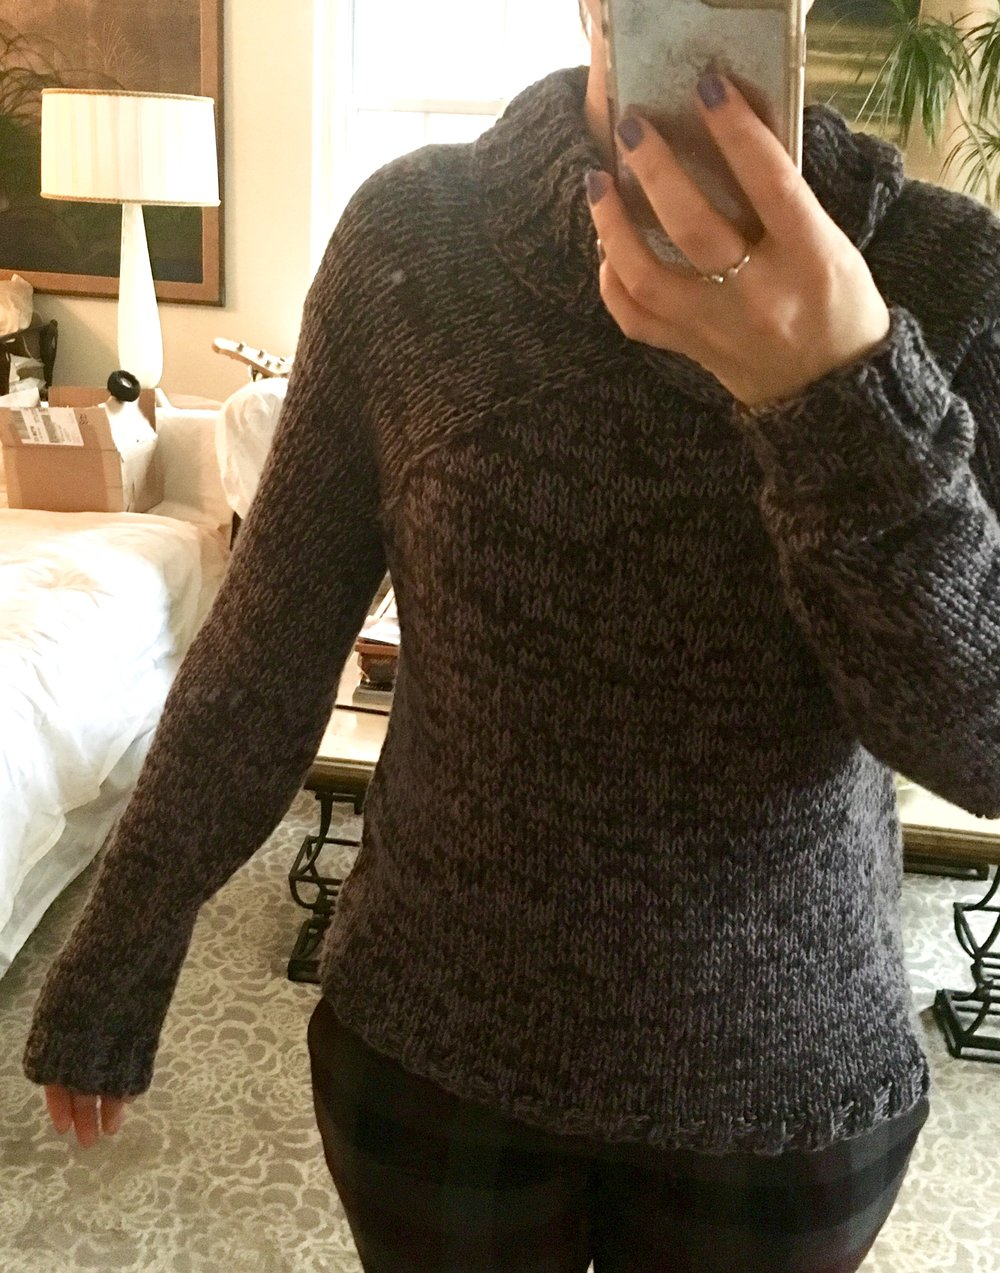 Ridiculous floppy sweater. I am a failure at life. -